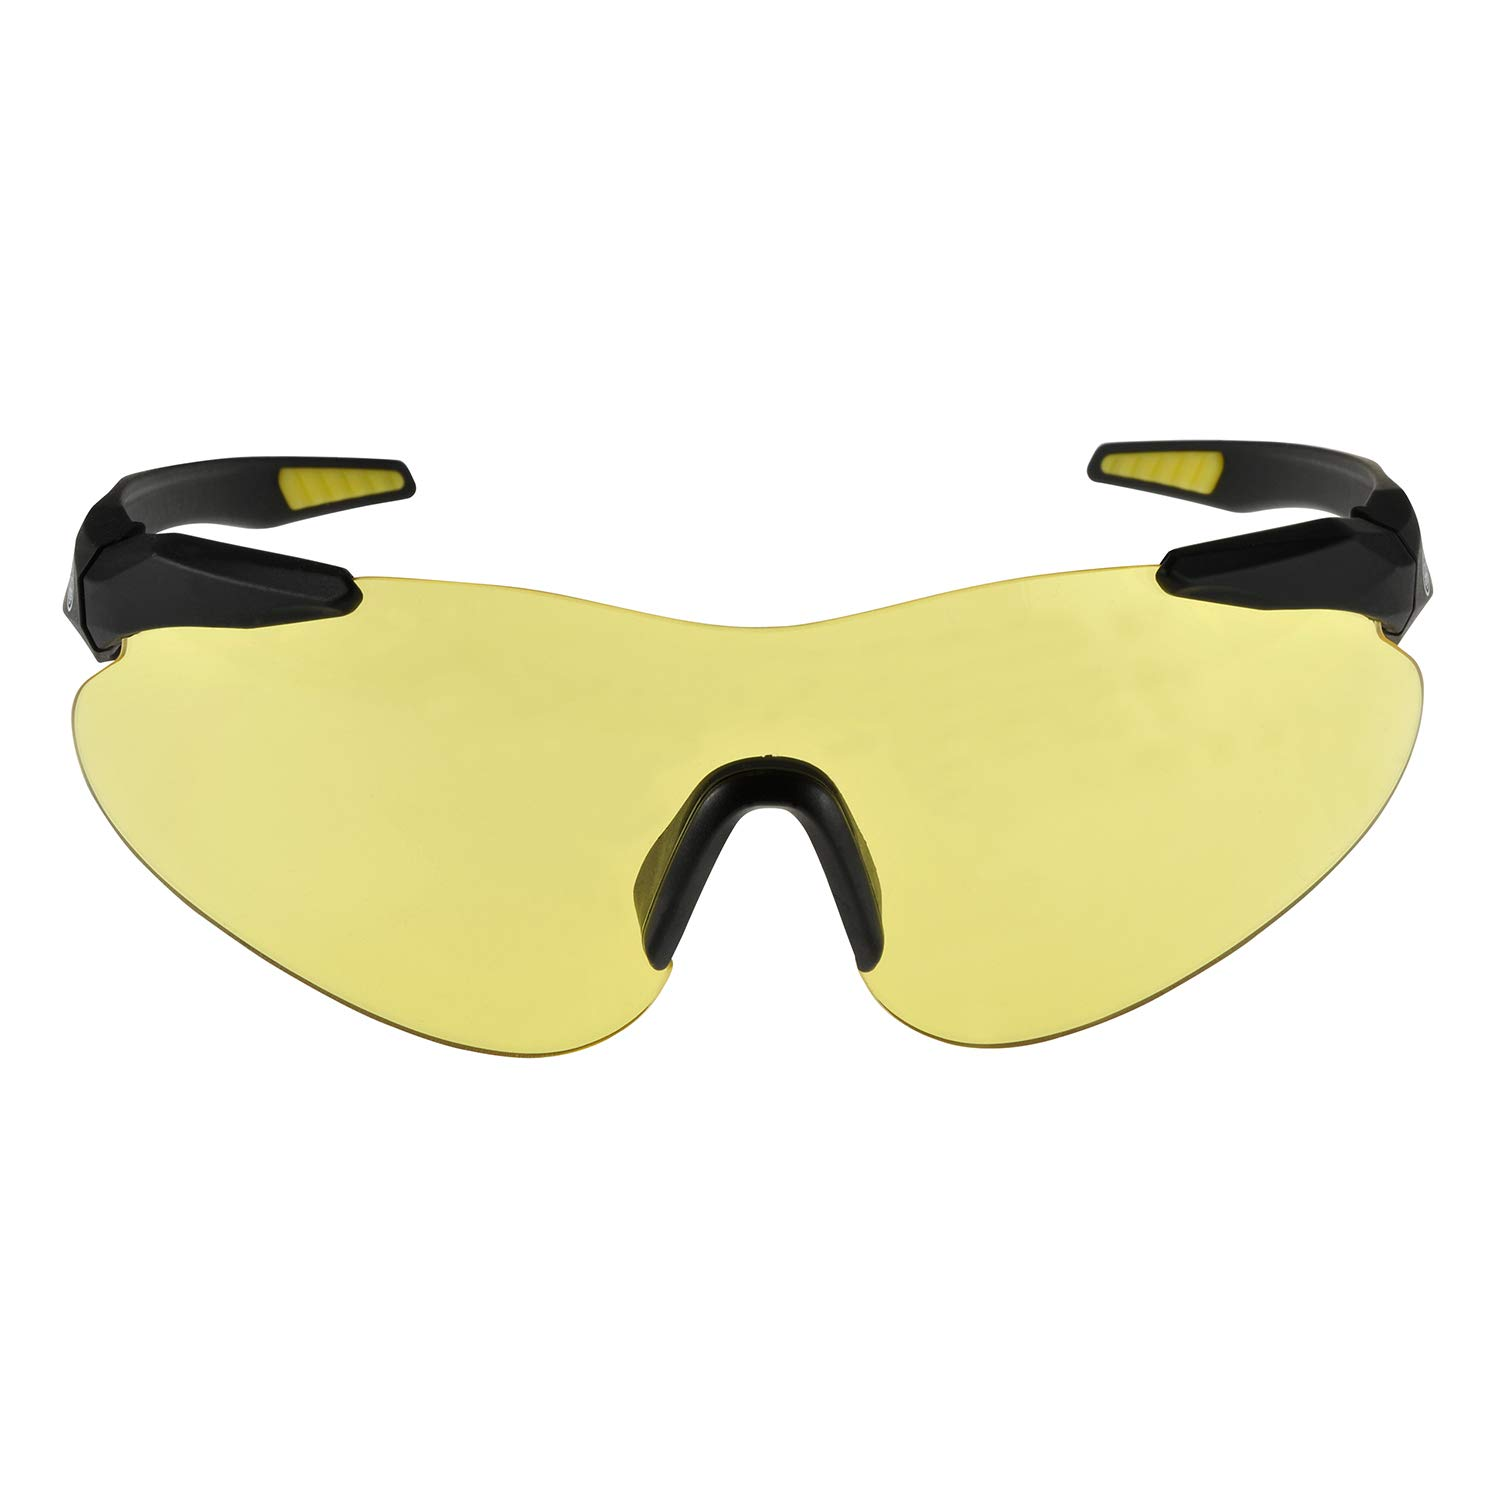 Beretta Shooting Glasses with Policarbonate Injected Lens, Yellow by Beretta